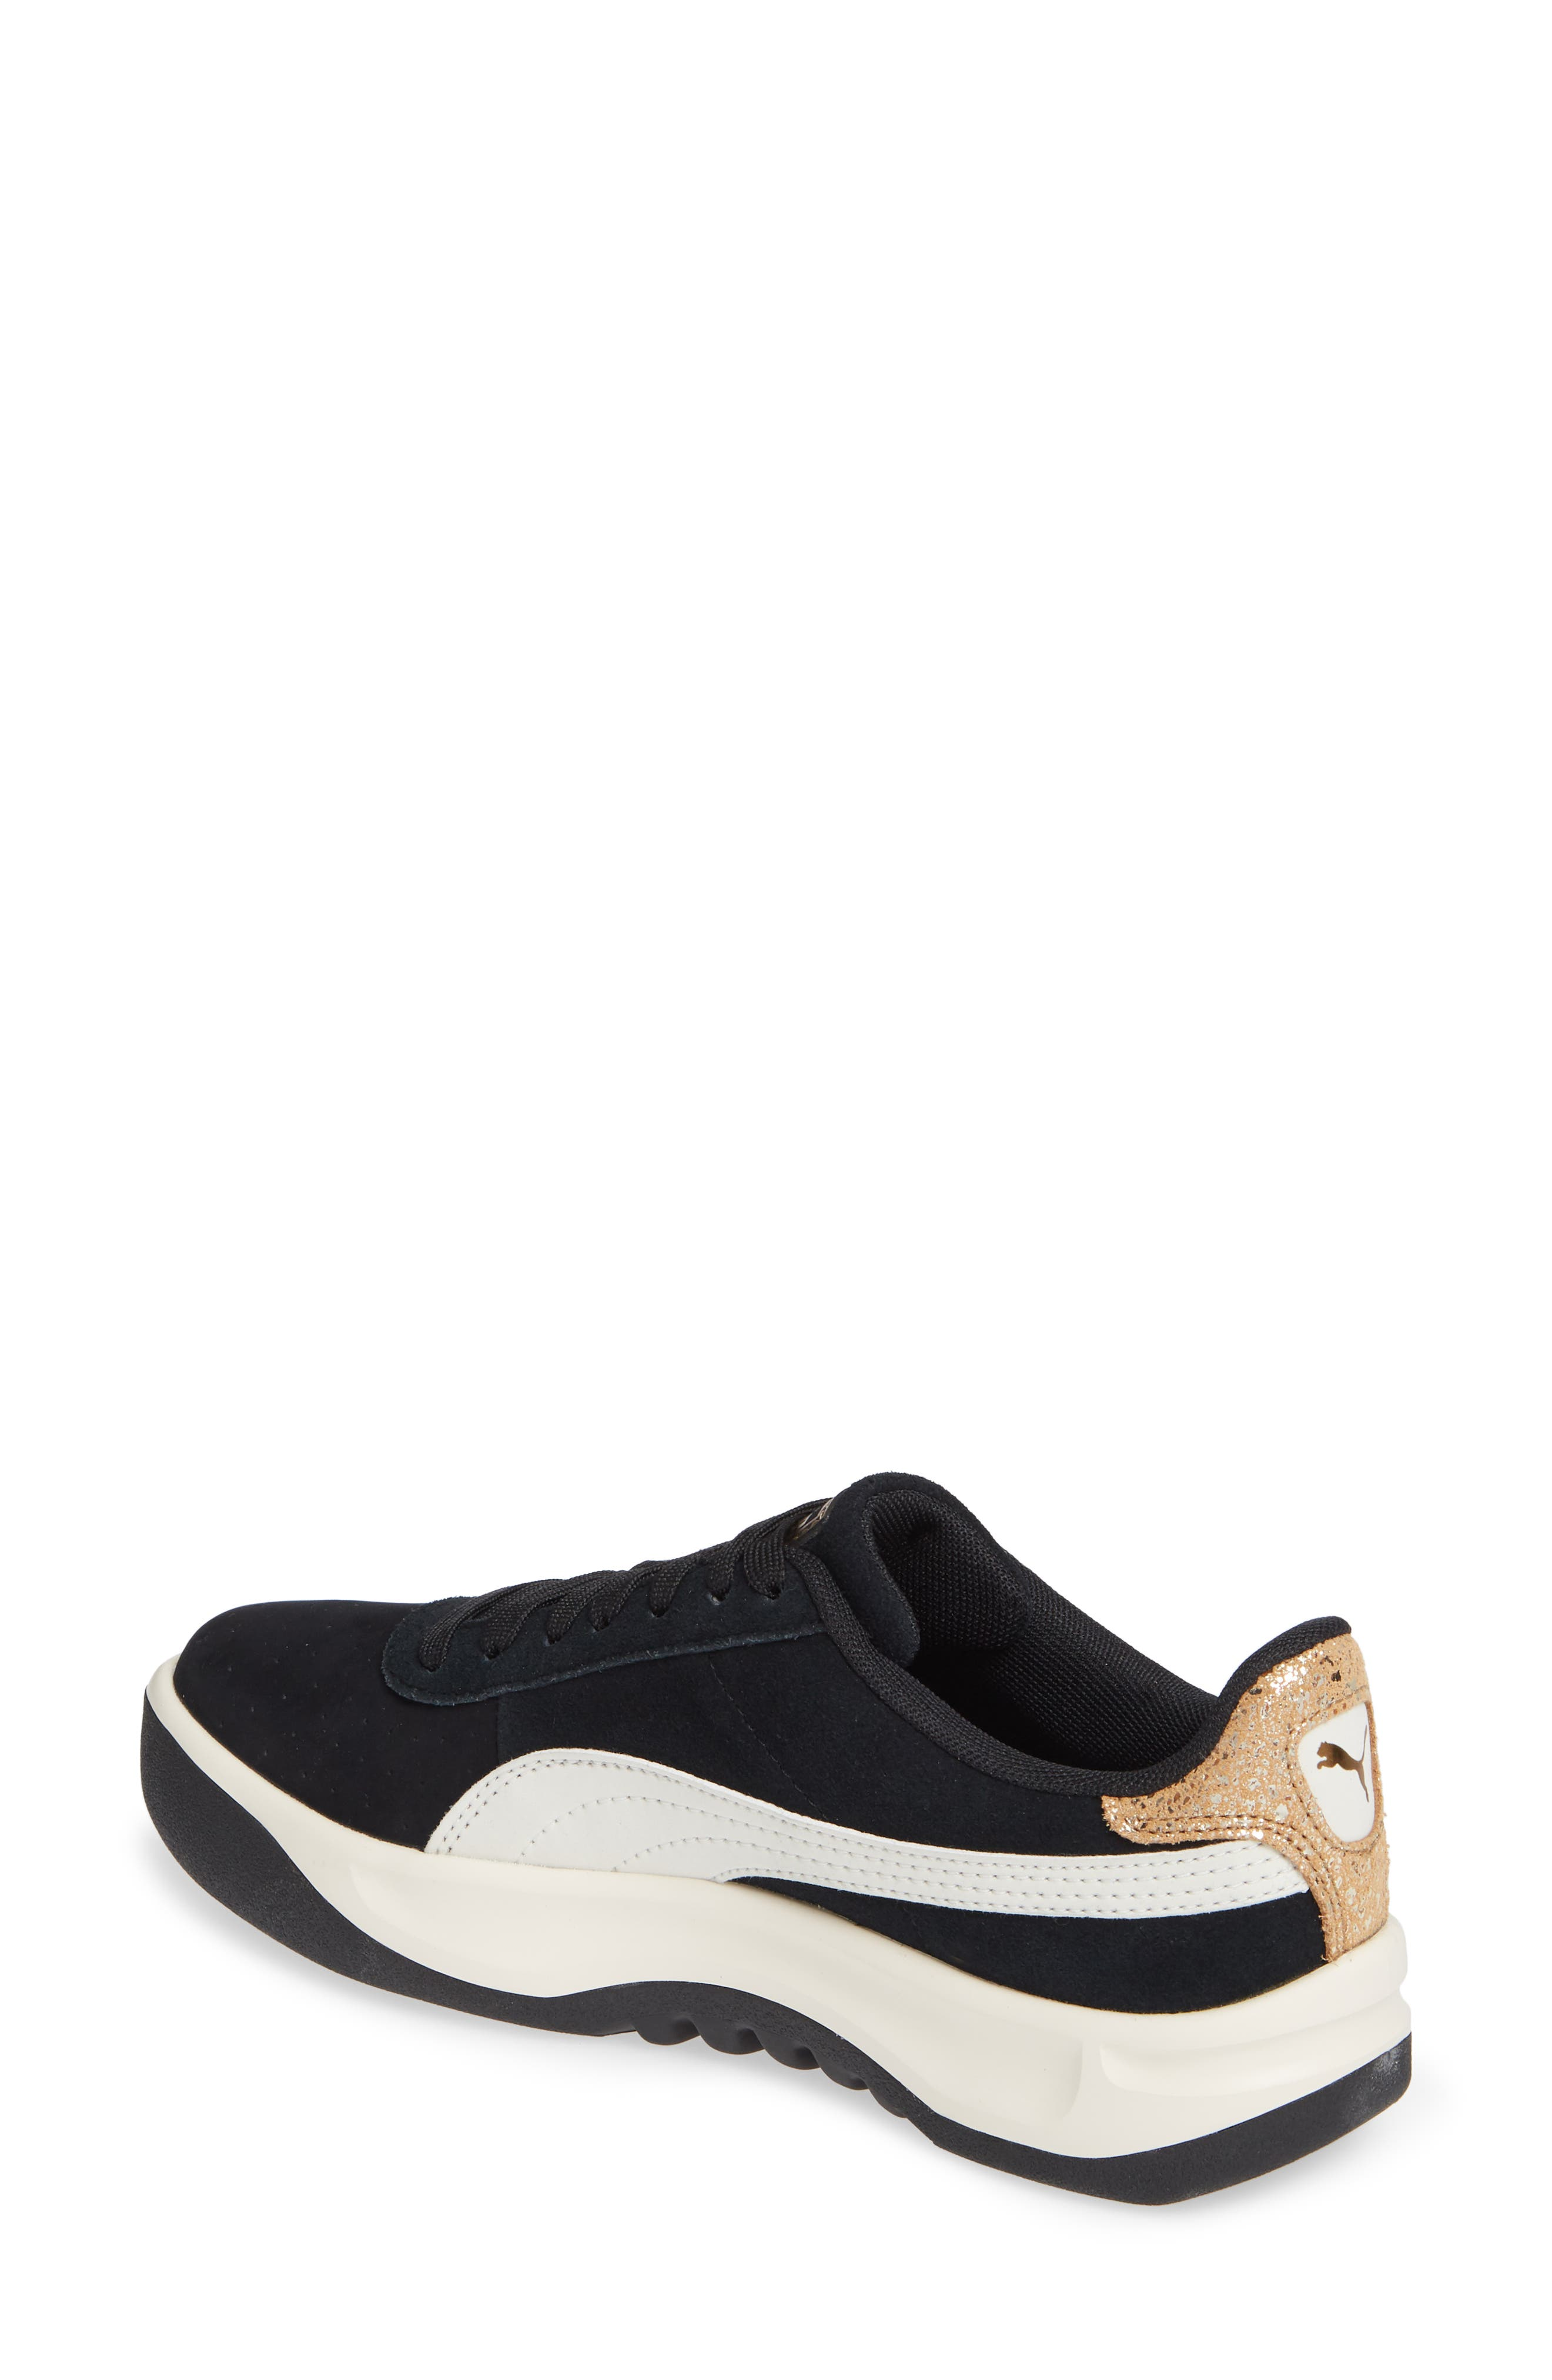 PUMA, California Metallic Sneaker, Alternate thumbnail 2, color, BLACK/ WHITE/ METALLIC BRONZE